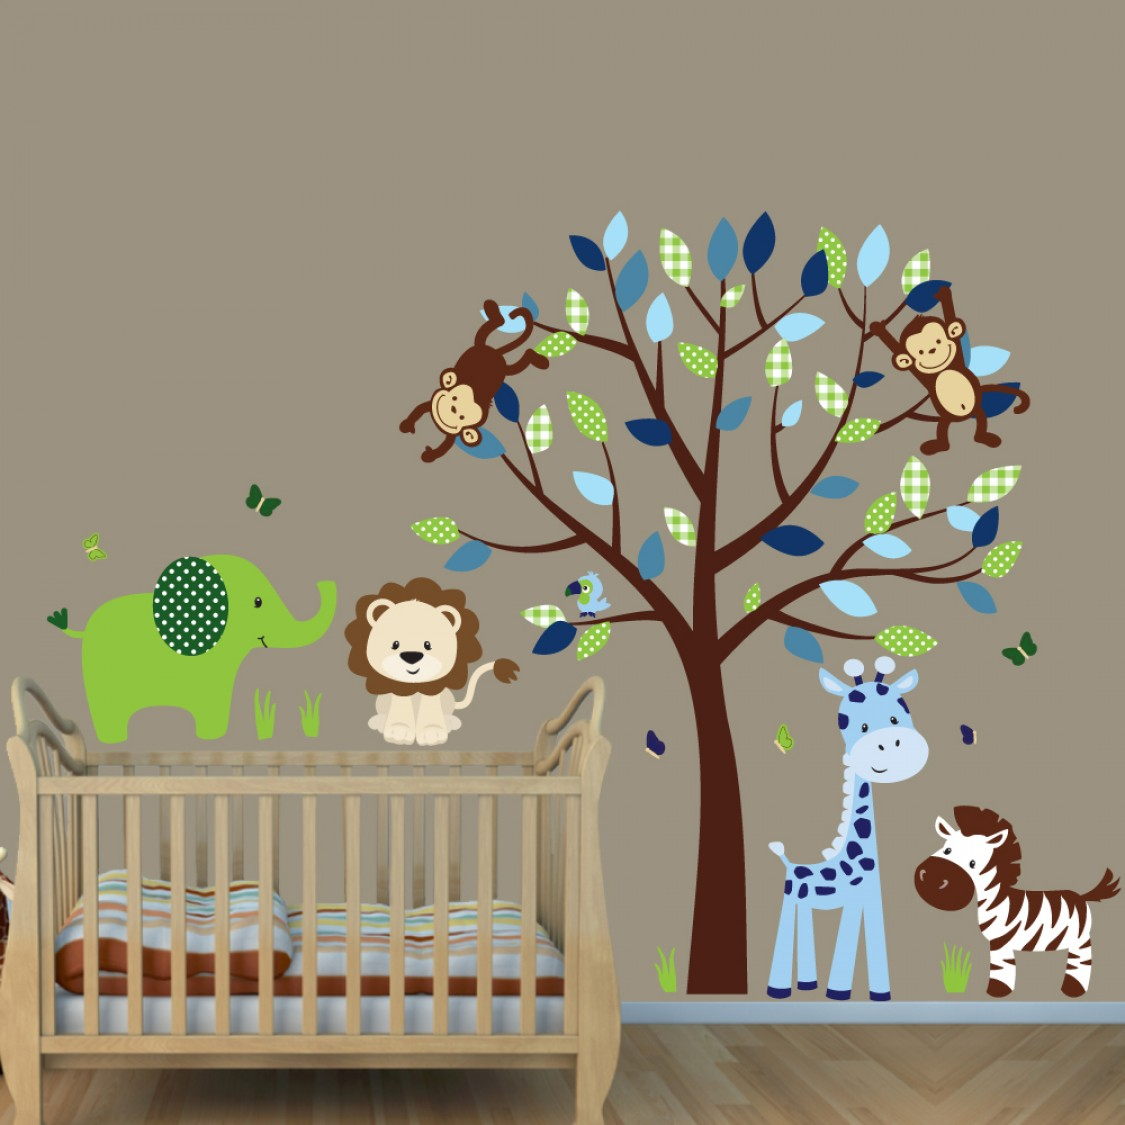 Green U0026 Blue Jungle Tree Wall Decals With Elephant Decals For Boys Rooms